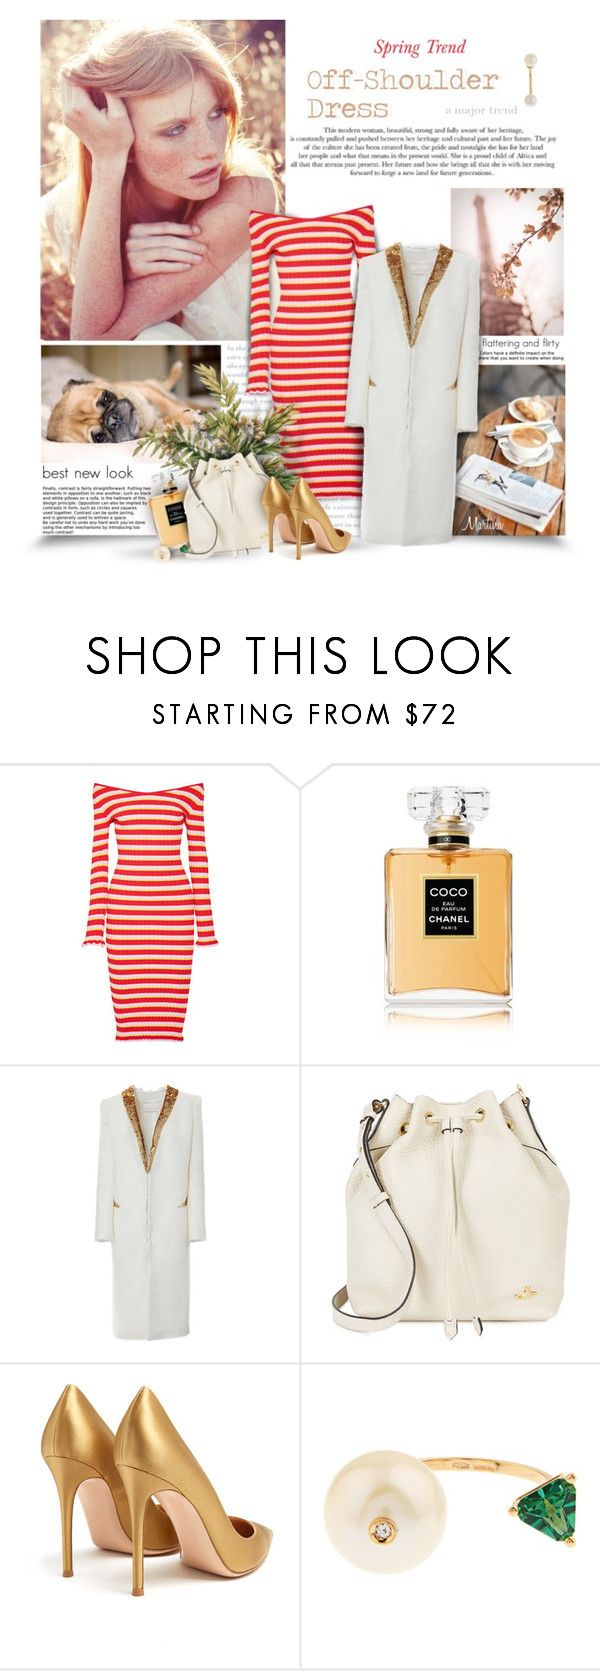 """""""Spring Trend: Off-Shoulder Dress"""" by thewondersoffashion ❤ liked on Polyvore featuring Altuzarra, Chanel, Genny, Vivienne Westwood, Gianvito Rossi and Delfina Delettrez"""